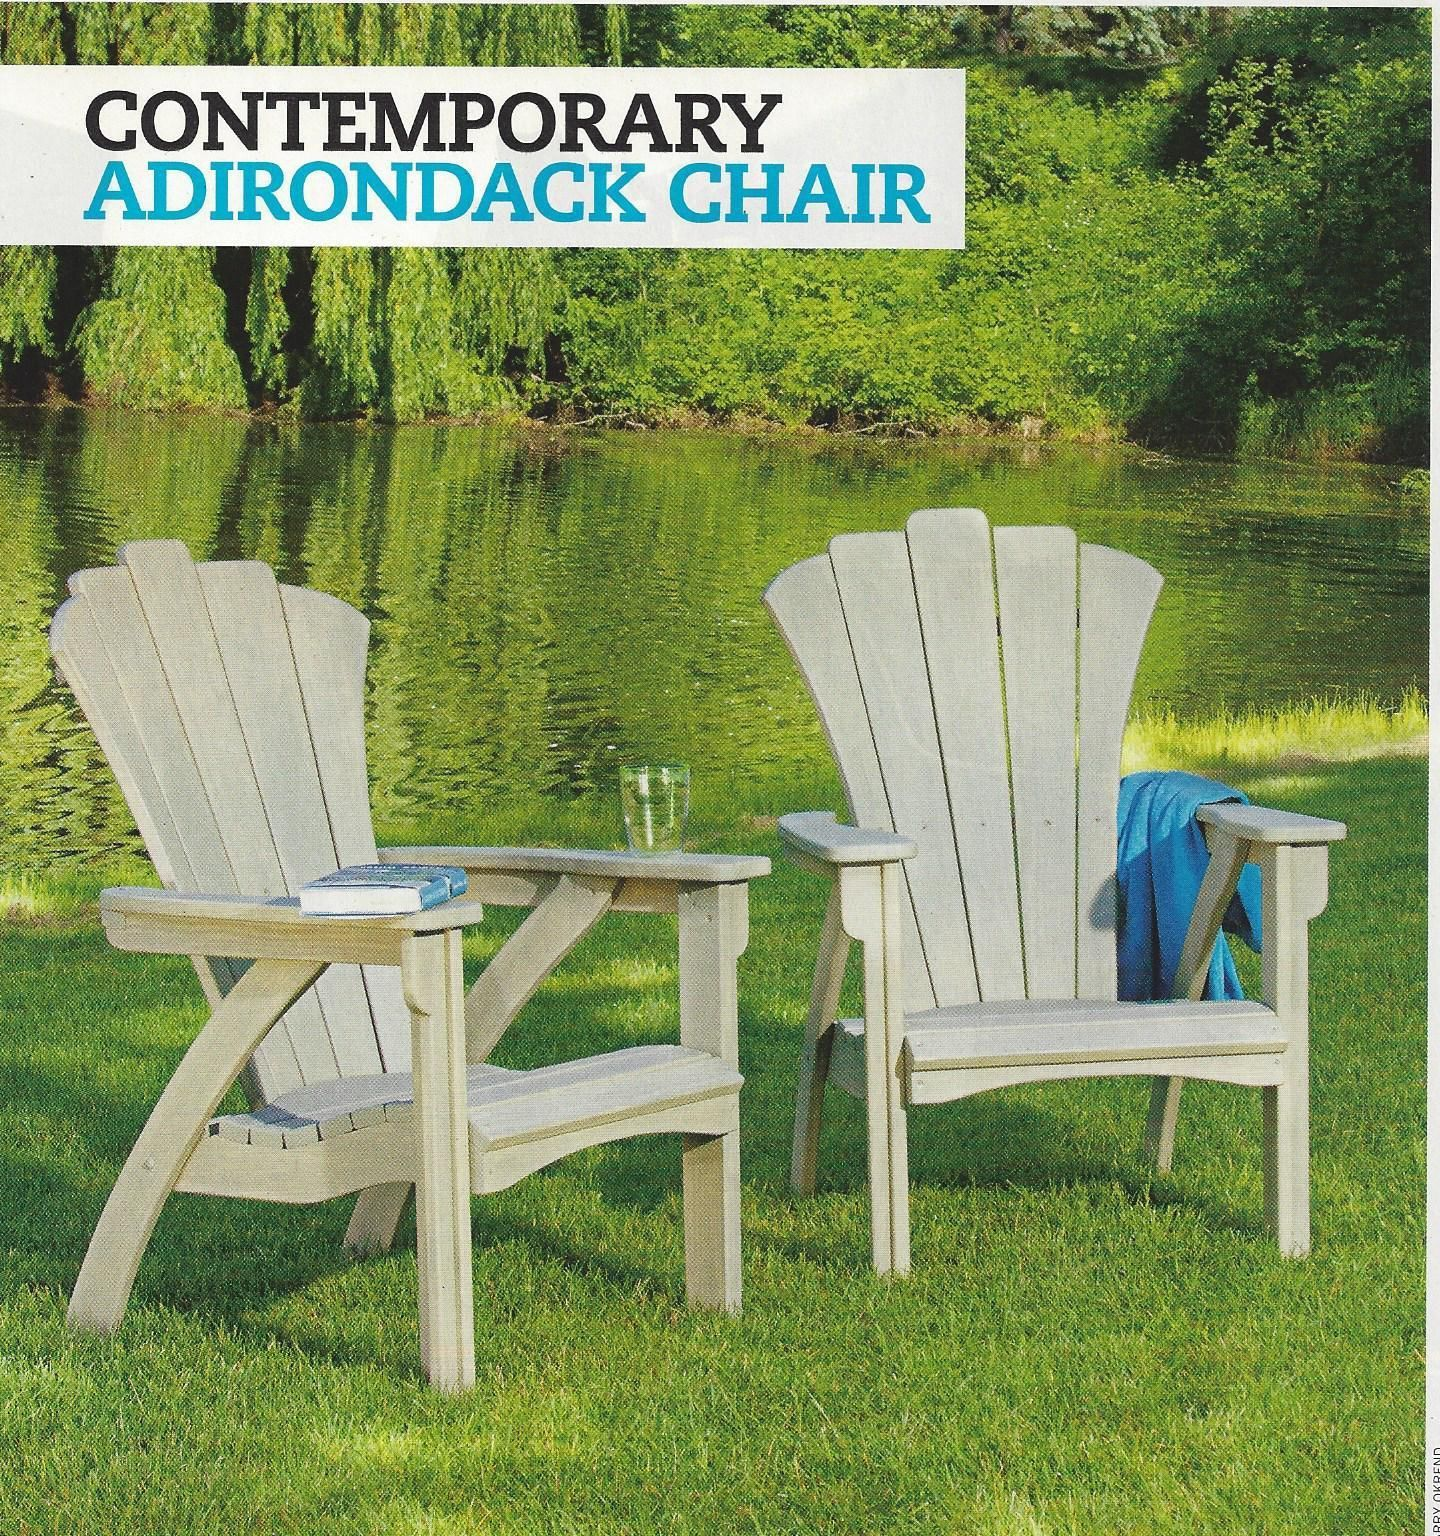 Woodworking Plans How To Build CONTEMPORARY ADIRONDACK CHAIR Sleek Modern